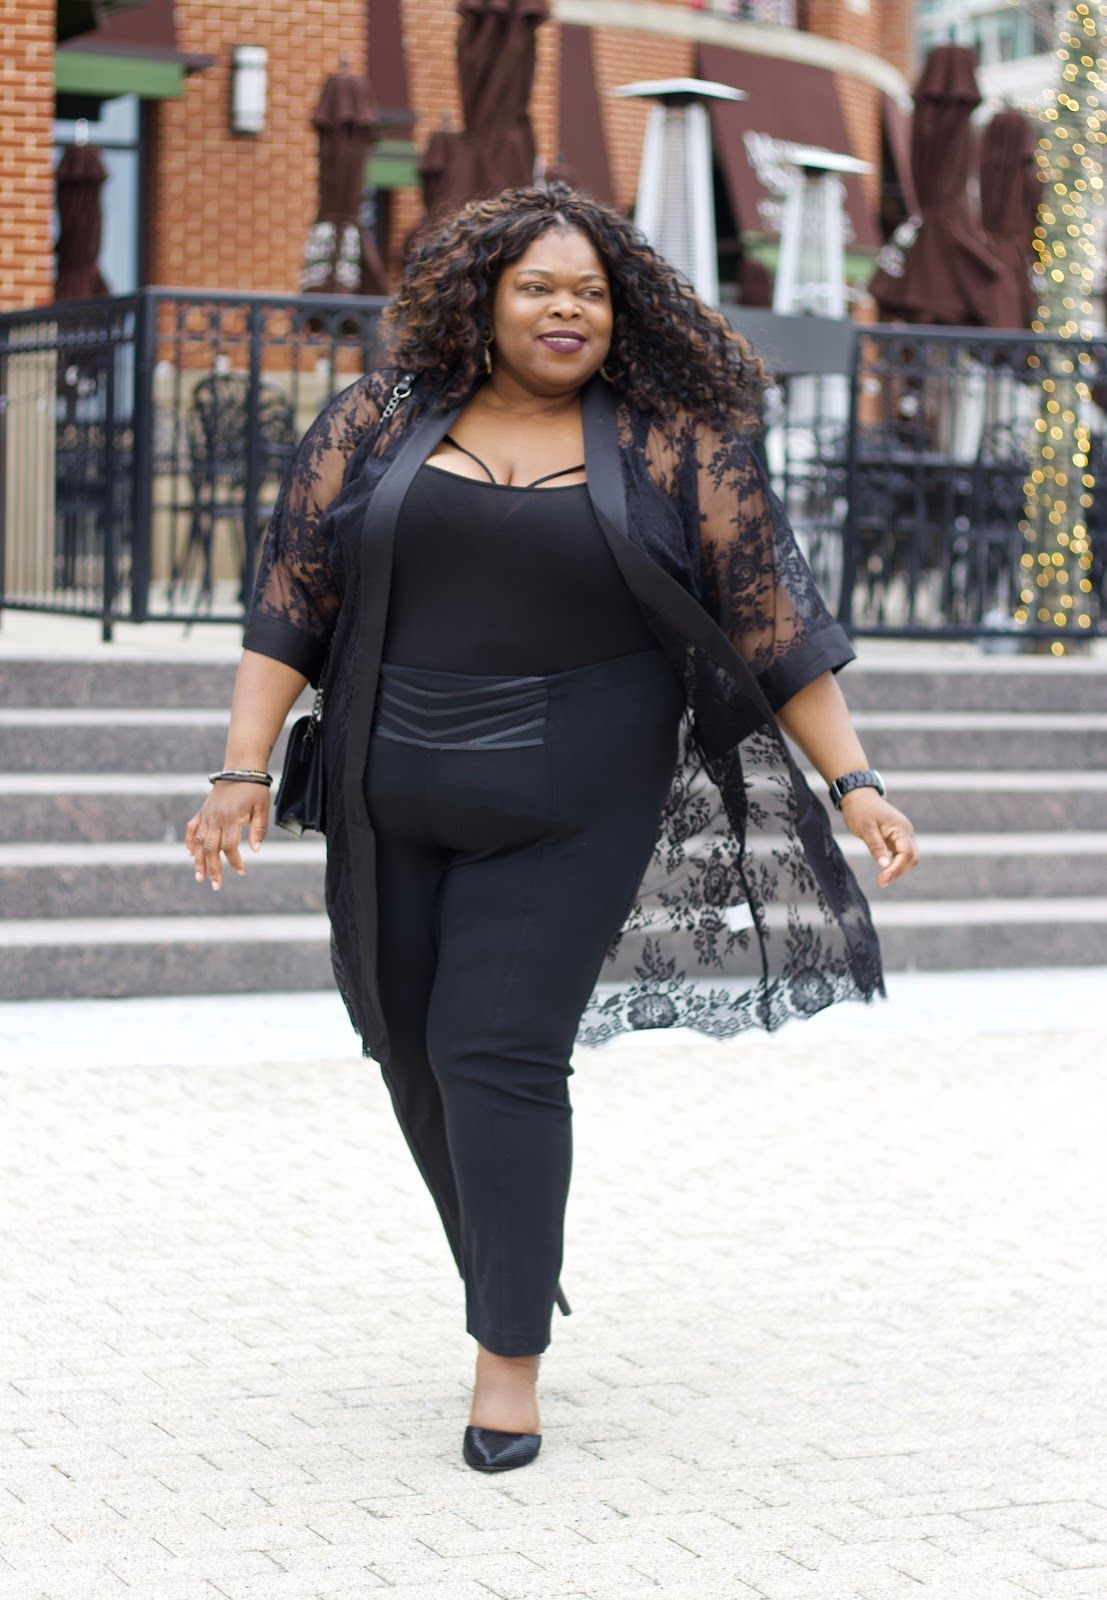 a3cc697d734 Making it Work with Shein.  shein  plussize  psblogger  style